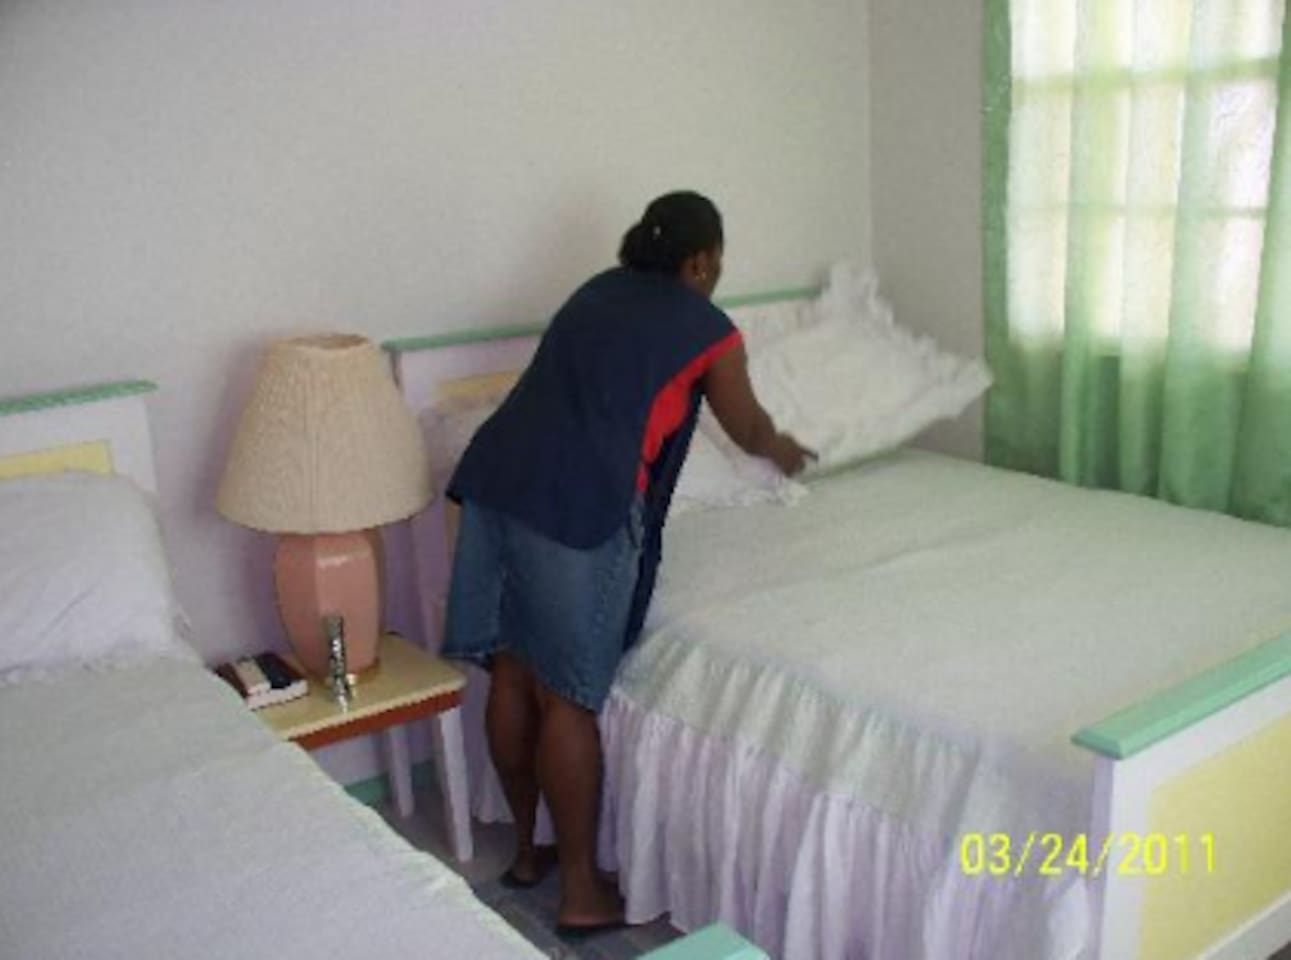 Our Housekeeper to Clean Your Room Daily so You can Feel the Sparkling, Cleanliness Everyday